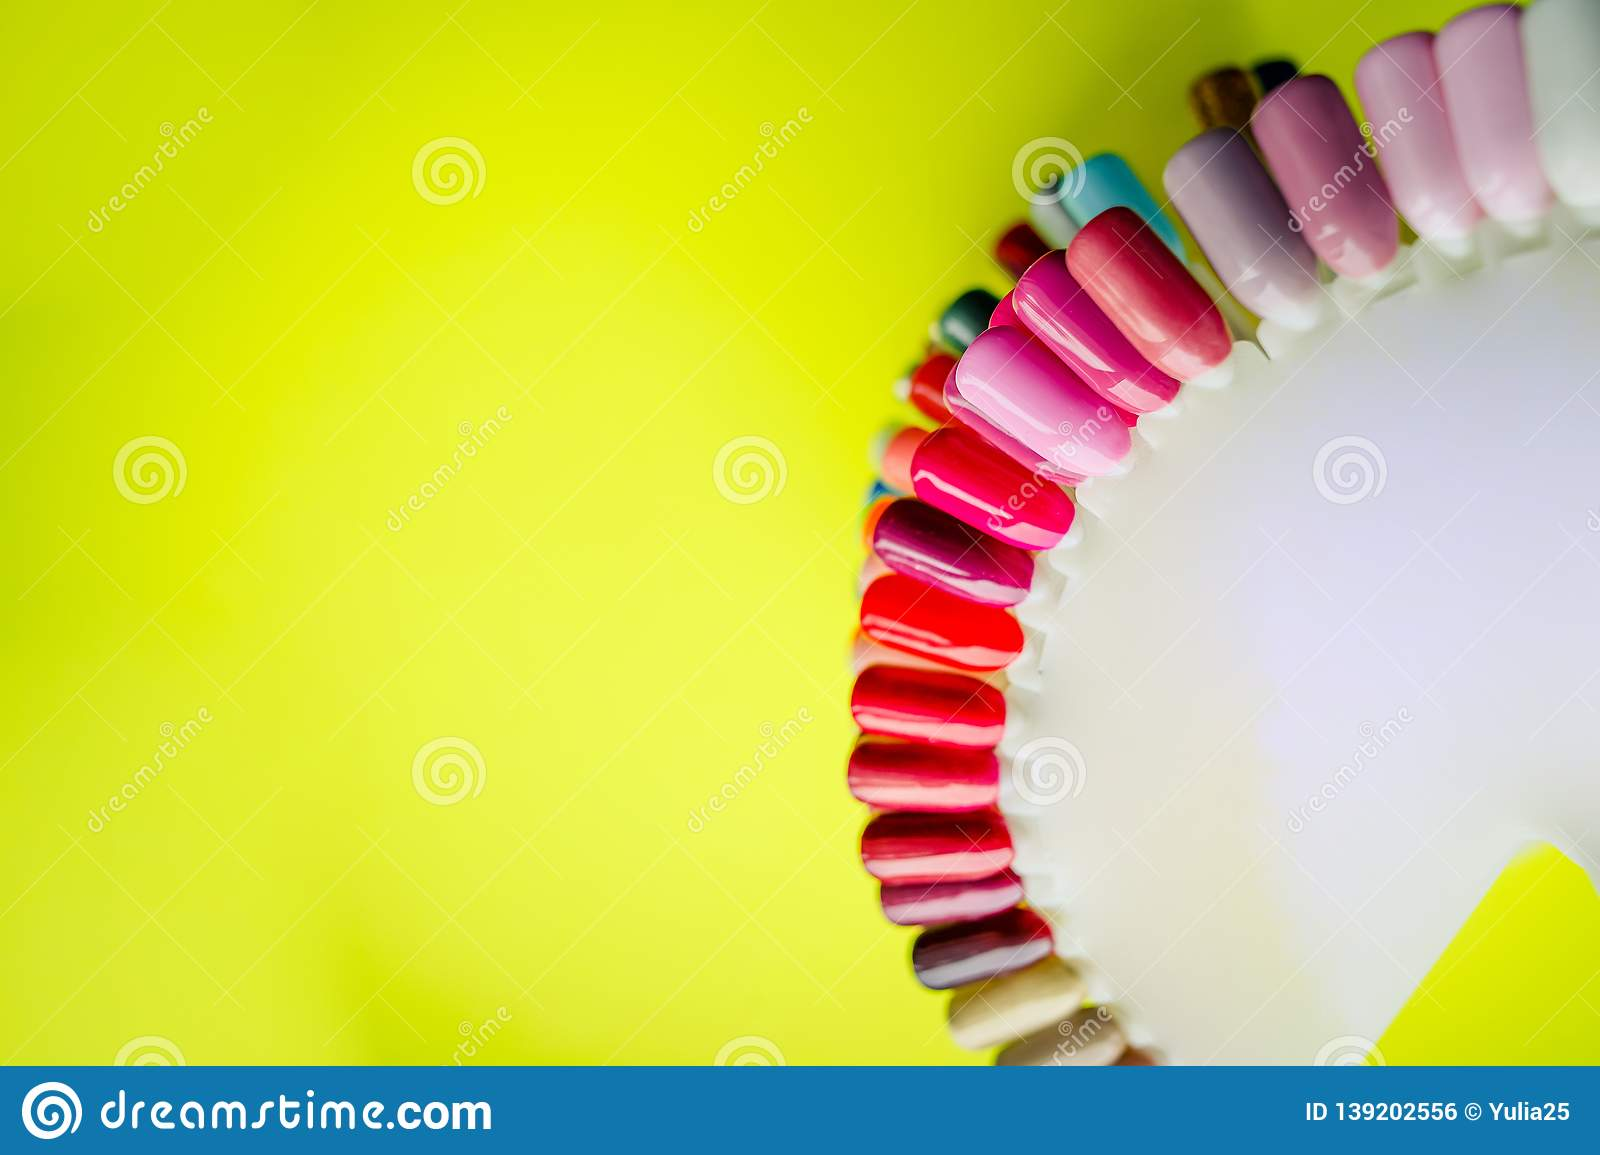 Fashion manicure. Shiny gel lacquer. Spring style. color of Polish for manicure. design for nails. testers nail Polish